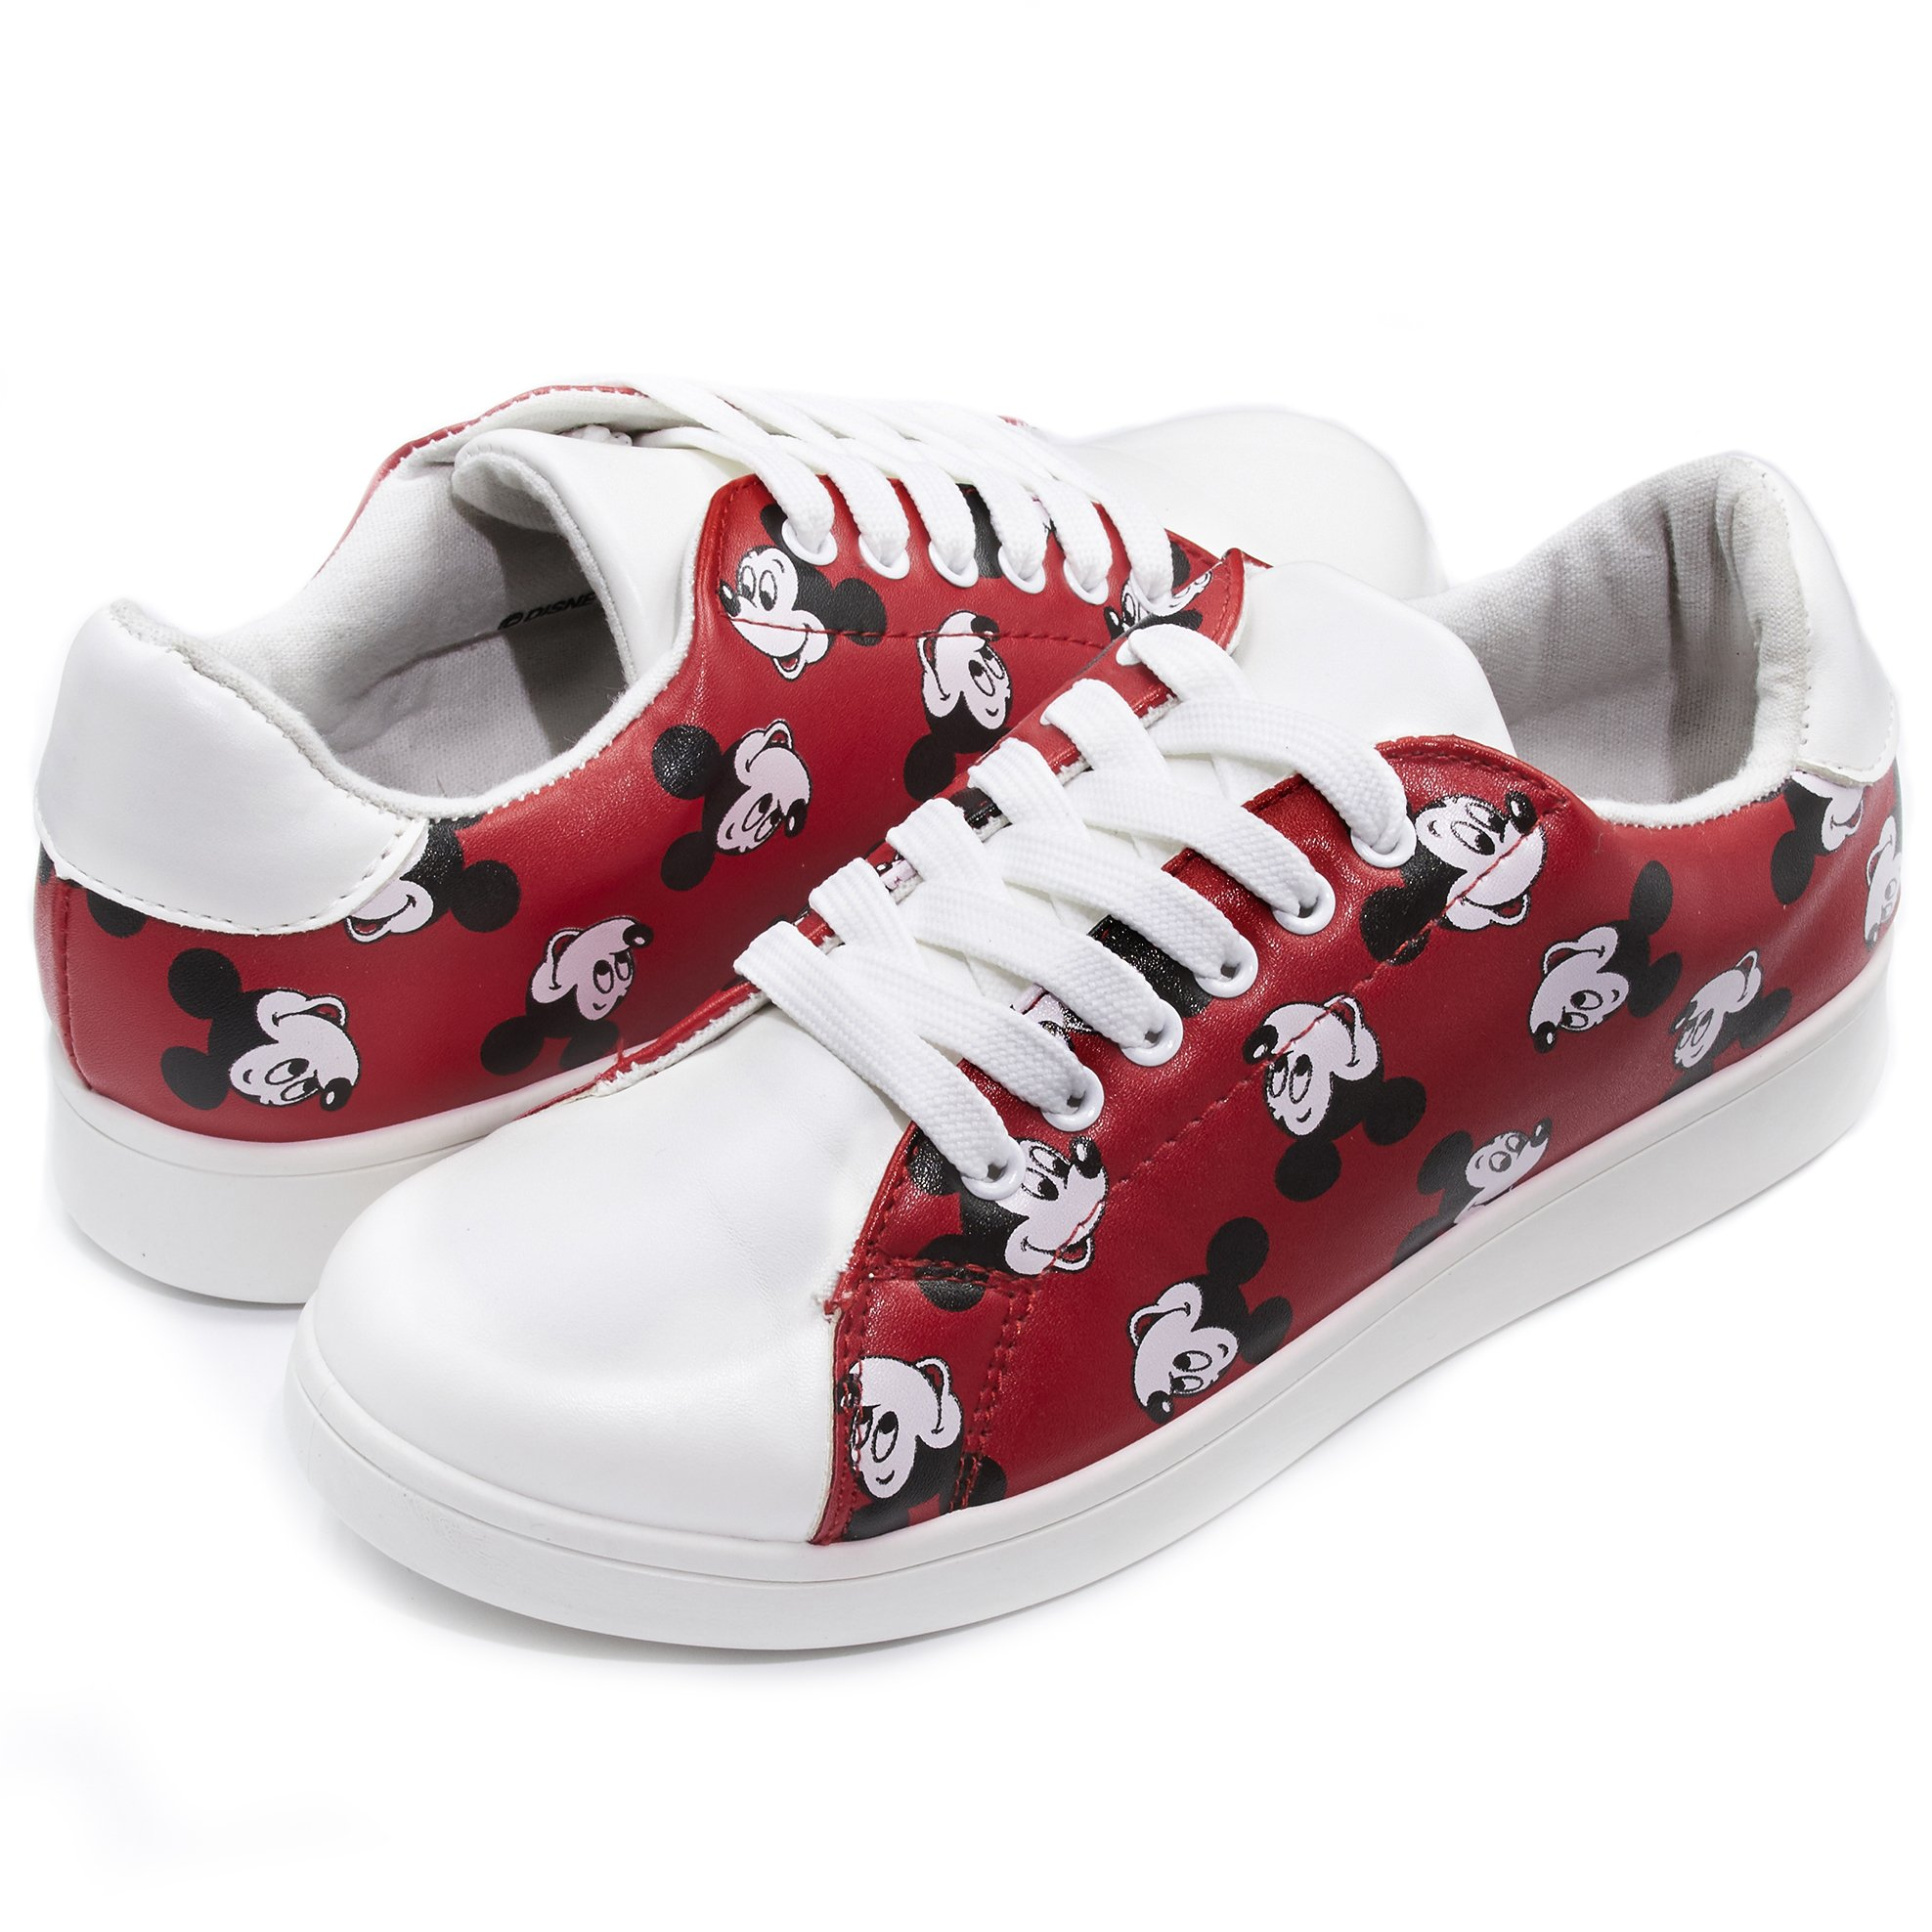 Disney Disney Classic Mickey FACE Faux Leather LACE UP Fashion Sneaker RED 6